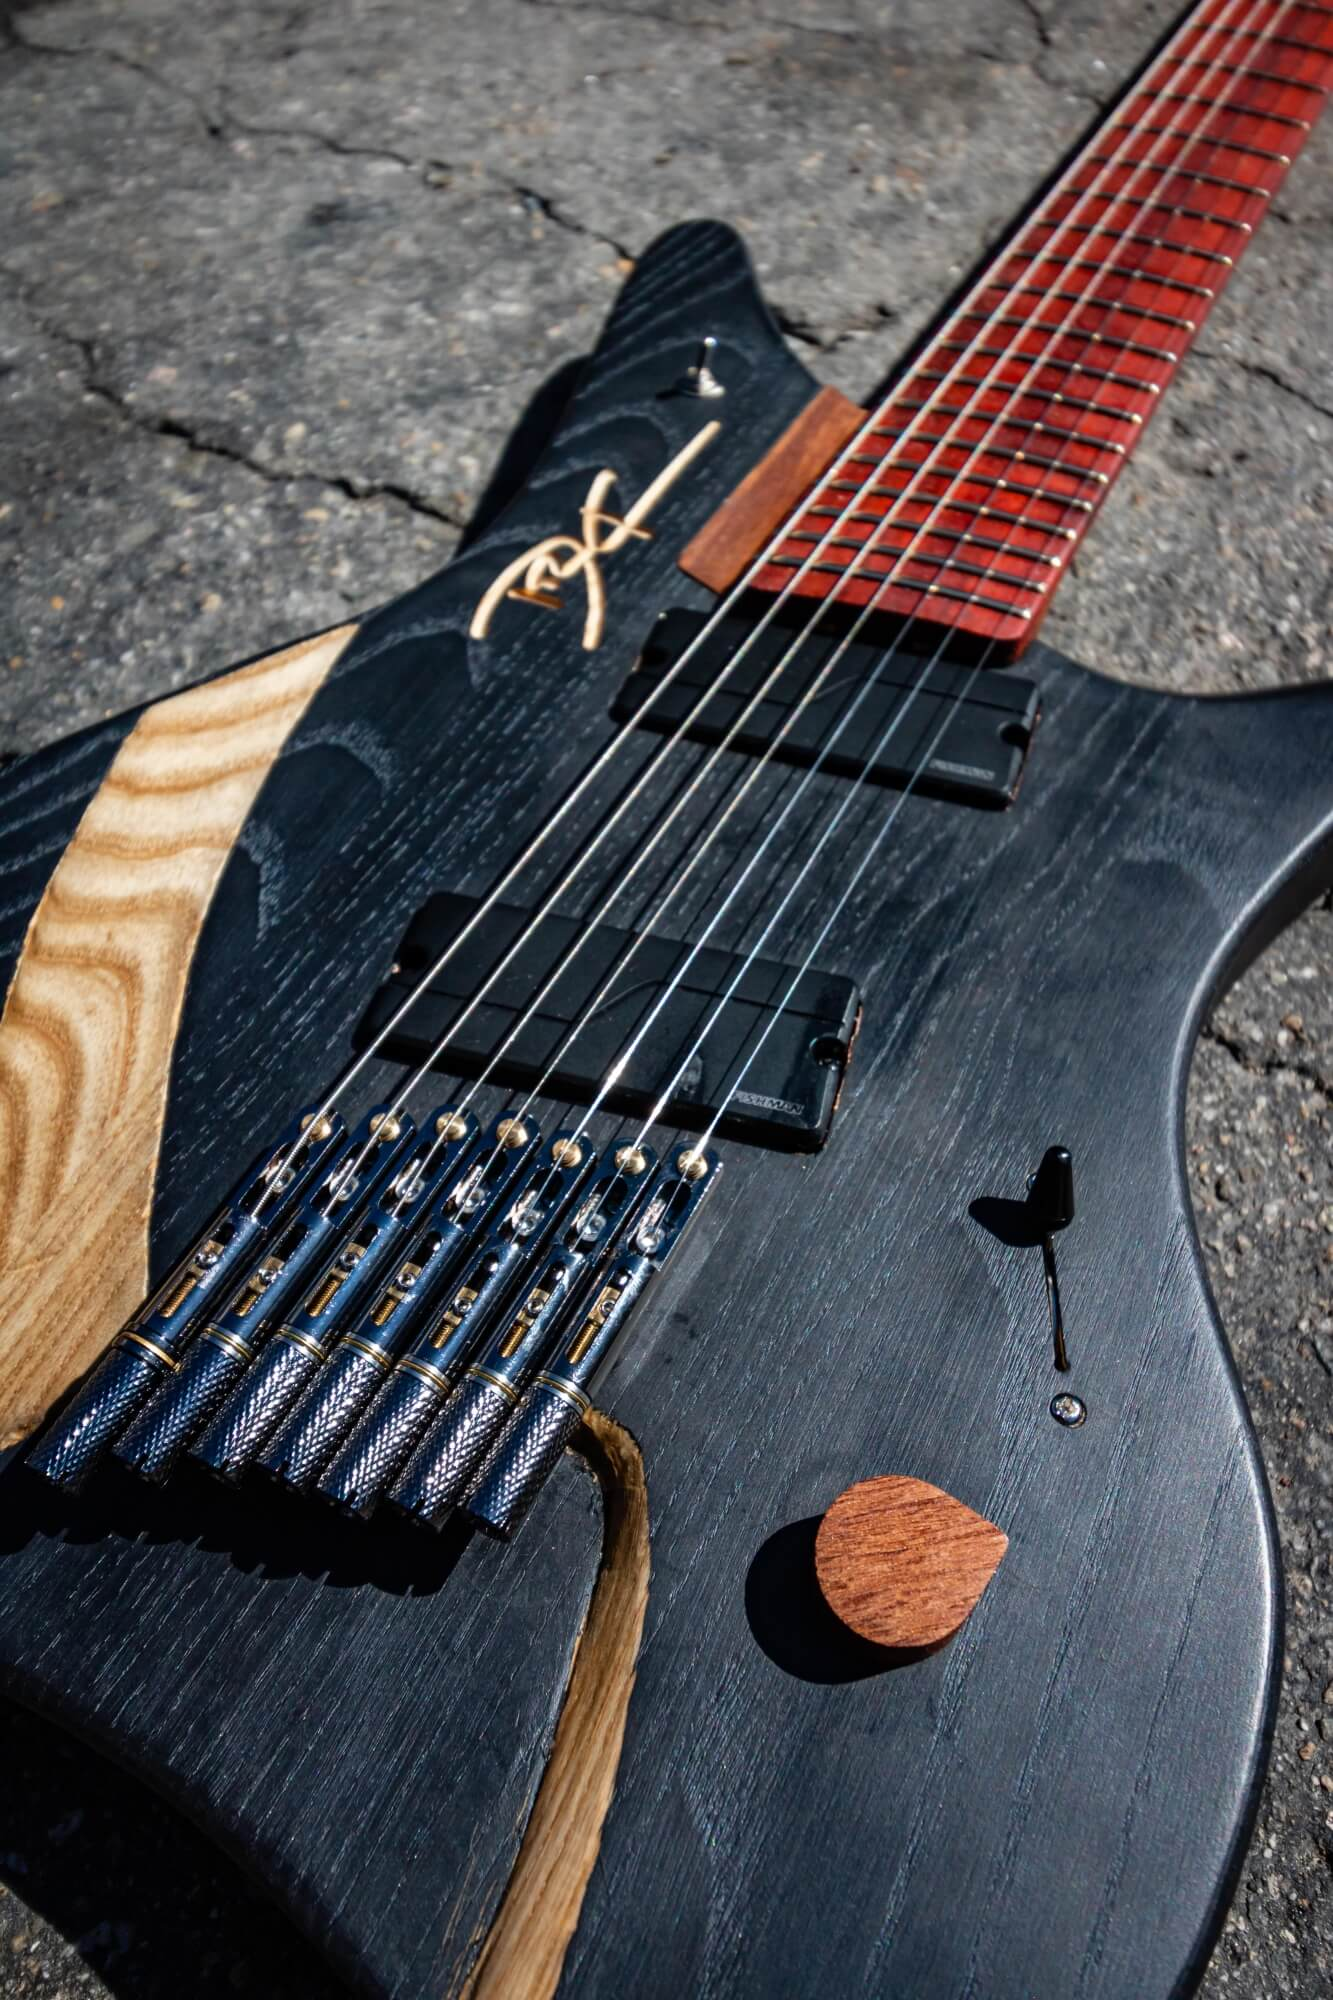 Hardwax oil wood electric guitar finish.